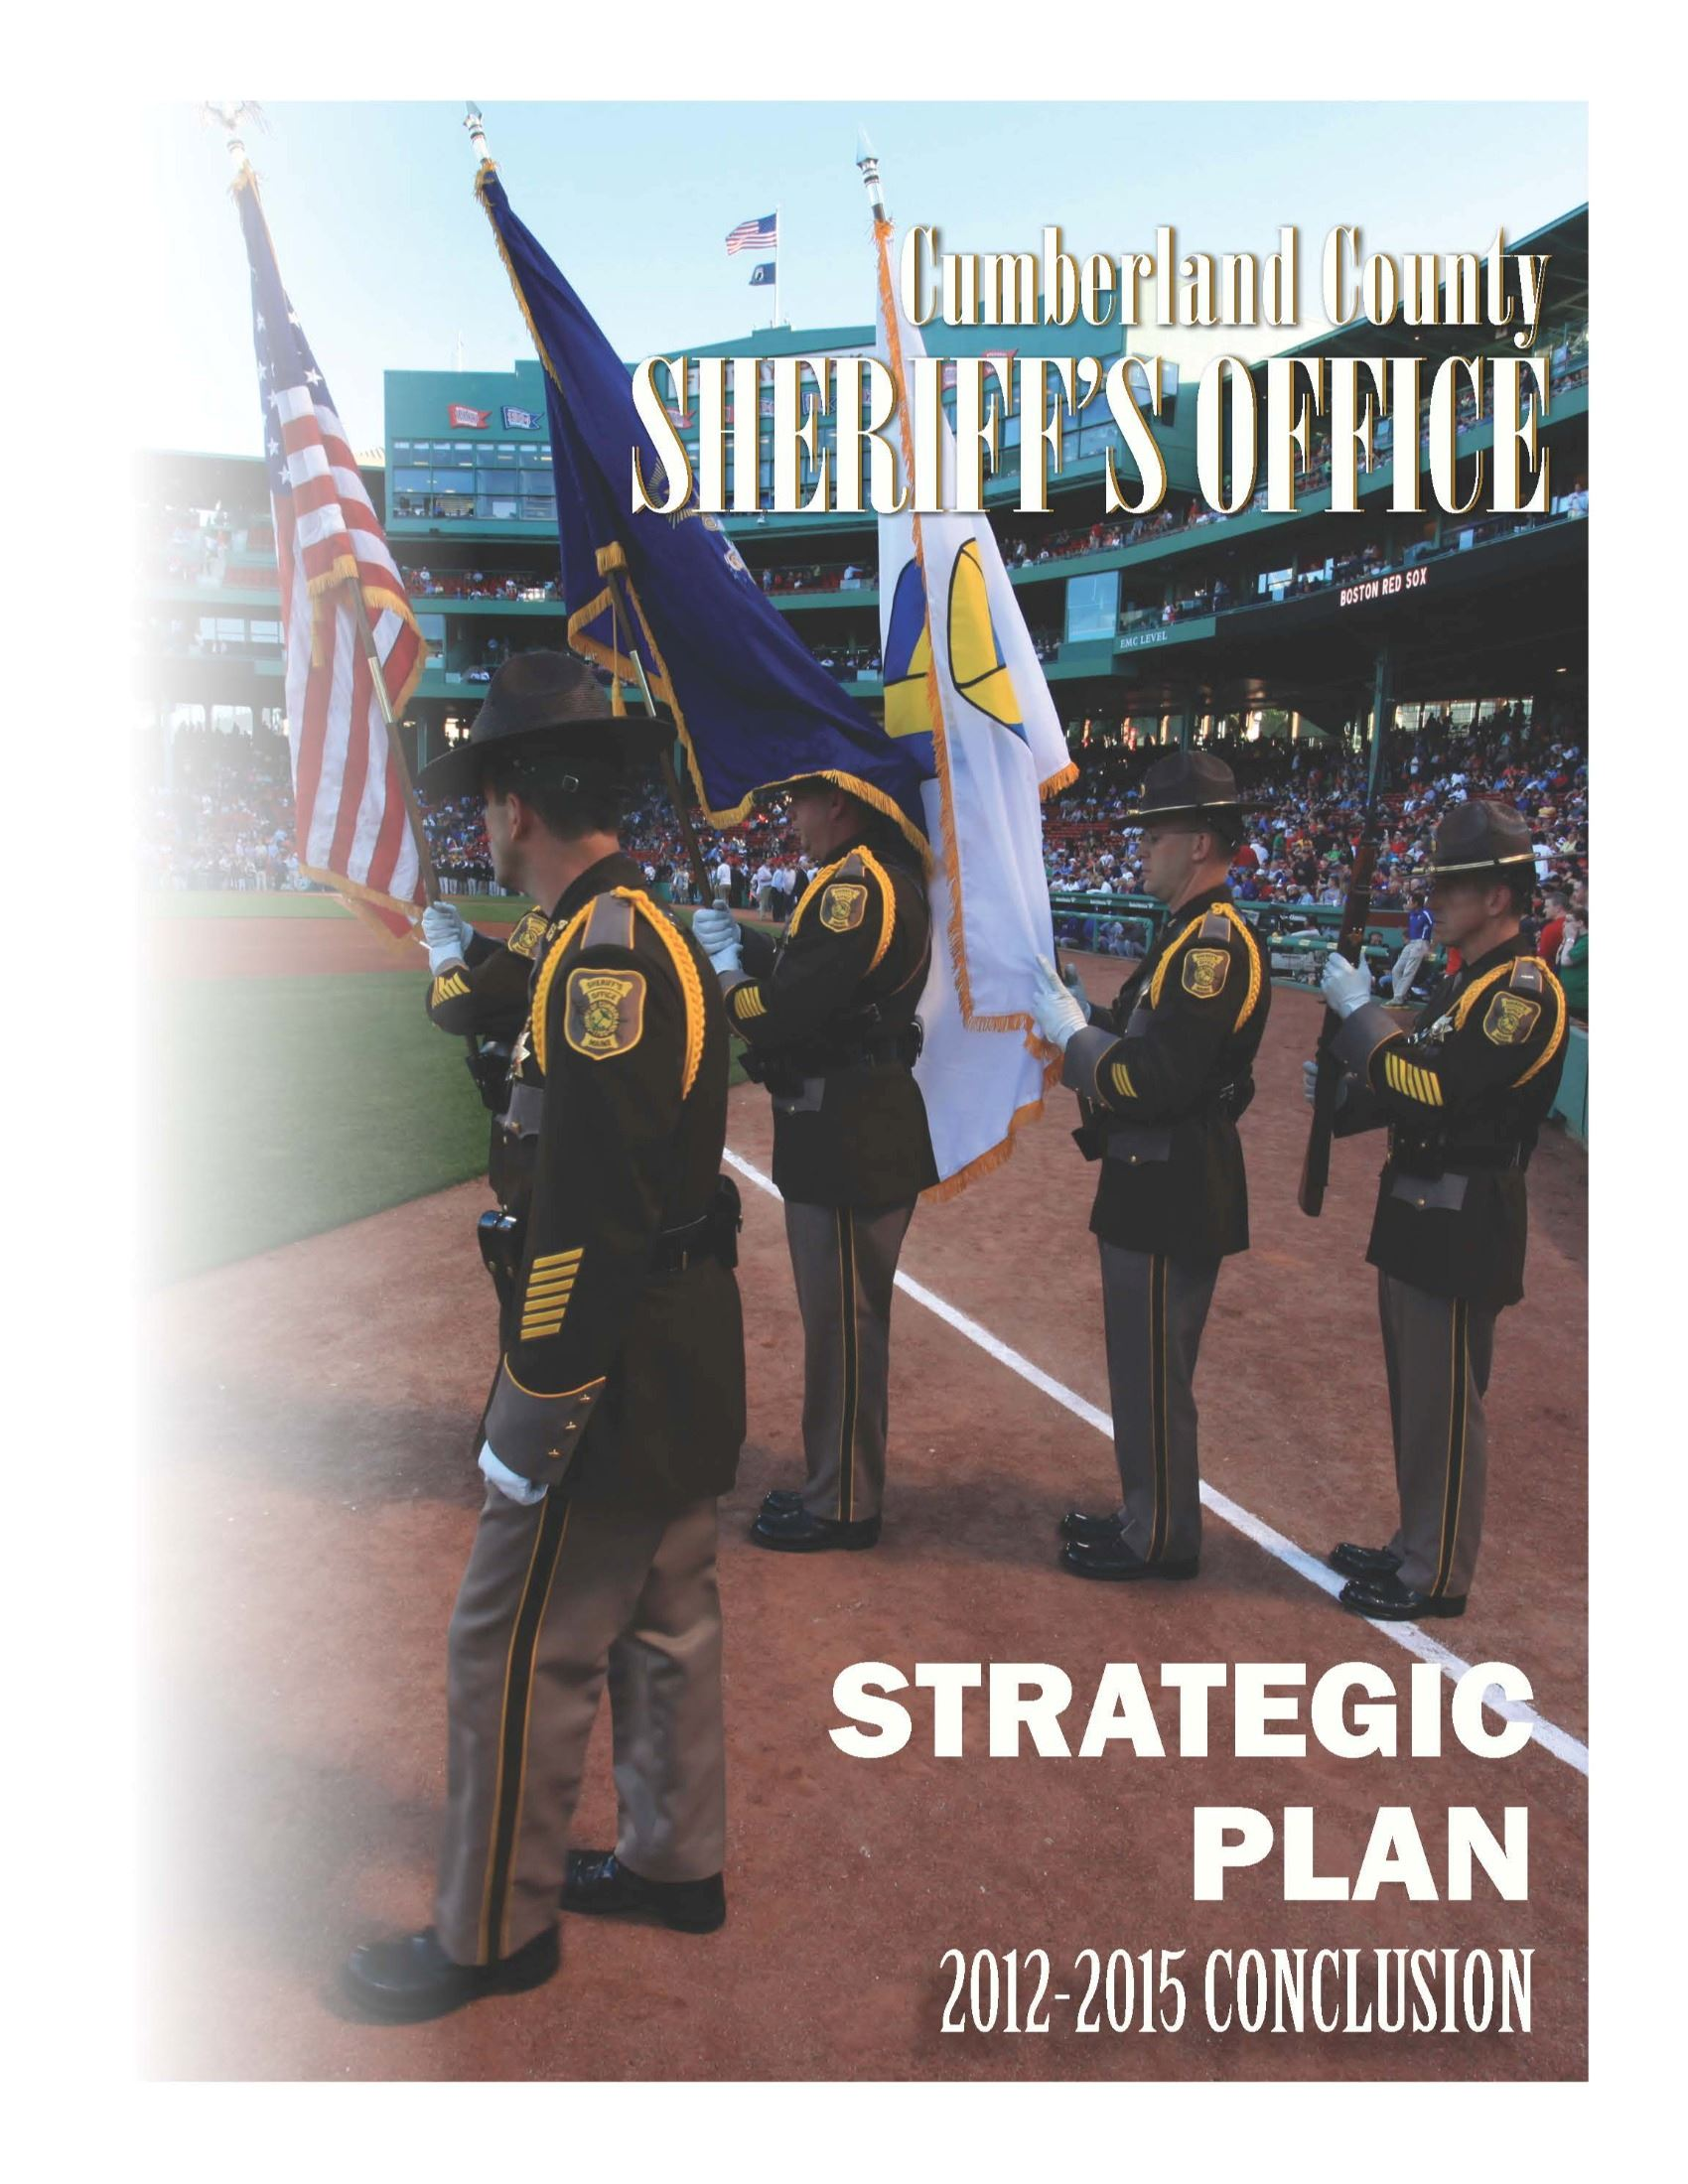 2012-2015 strategic plan conclusion SP 5917_Page_01